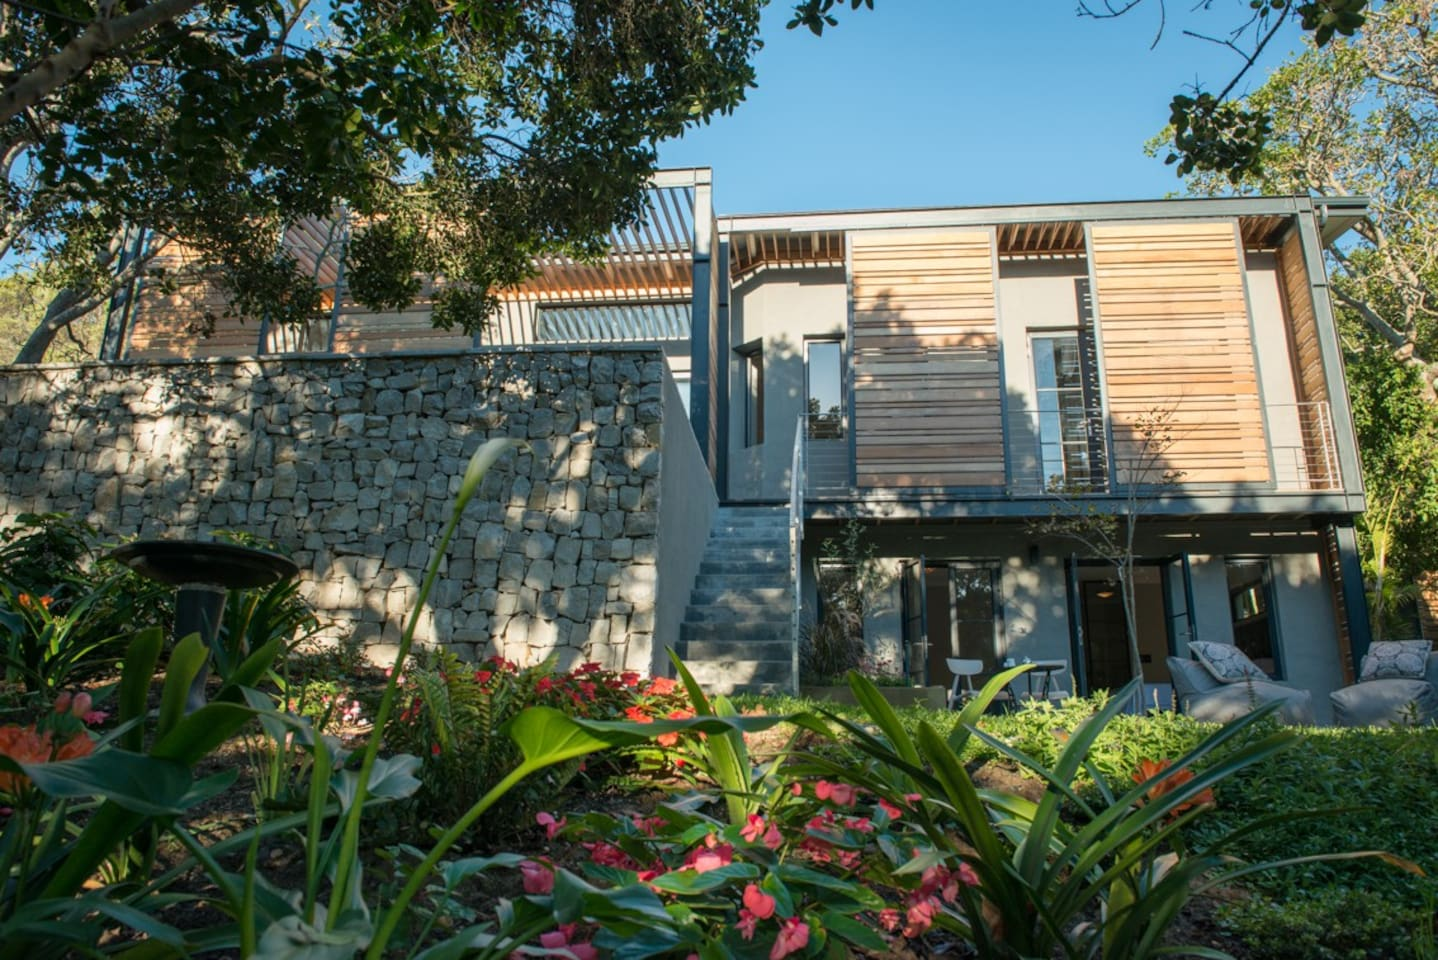 Park House II - featuring 4 plush suites close to the beach